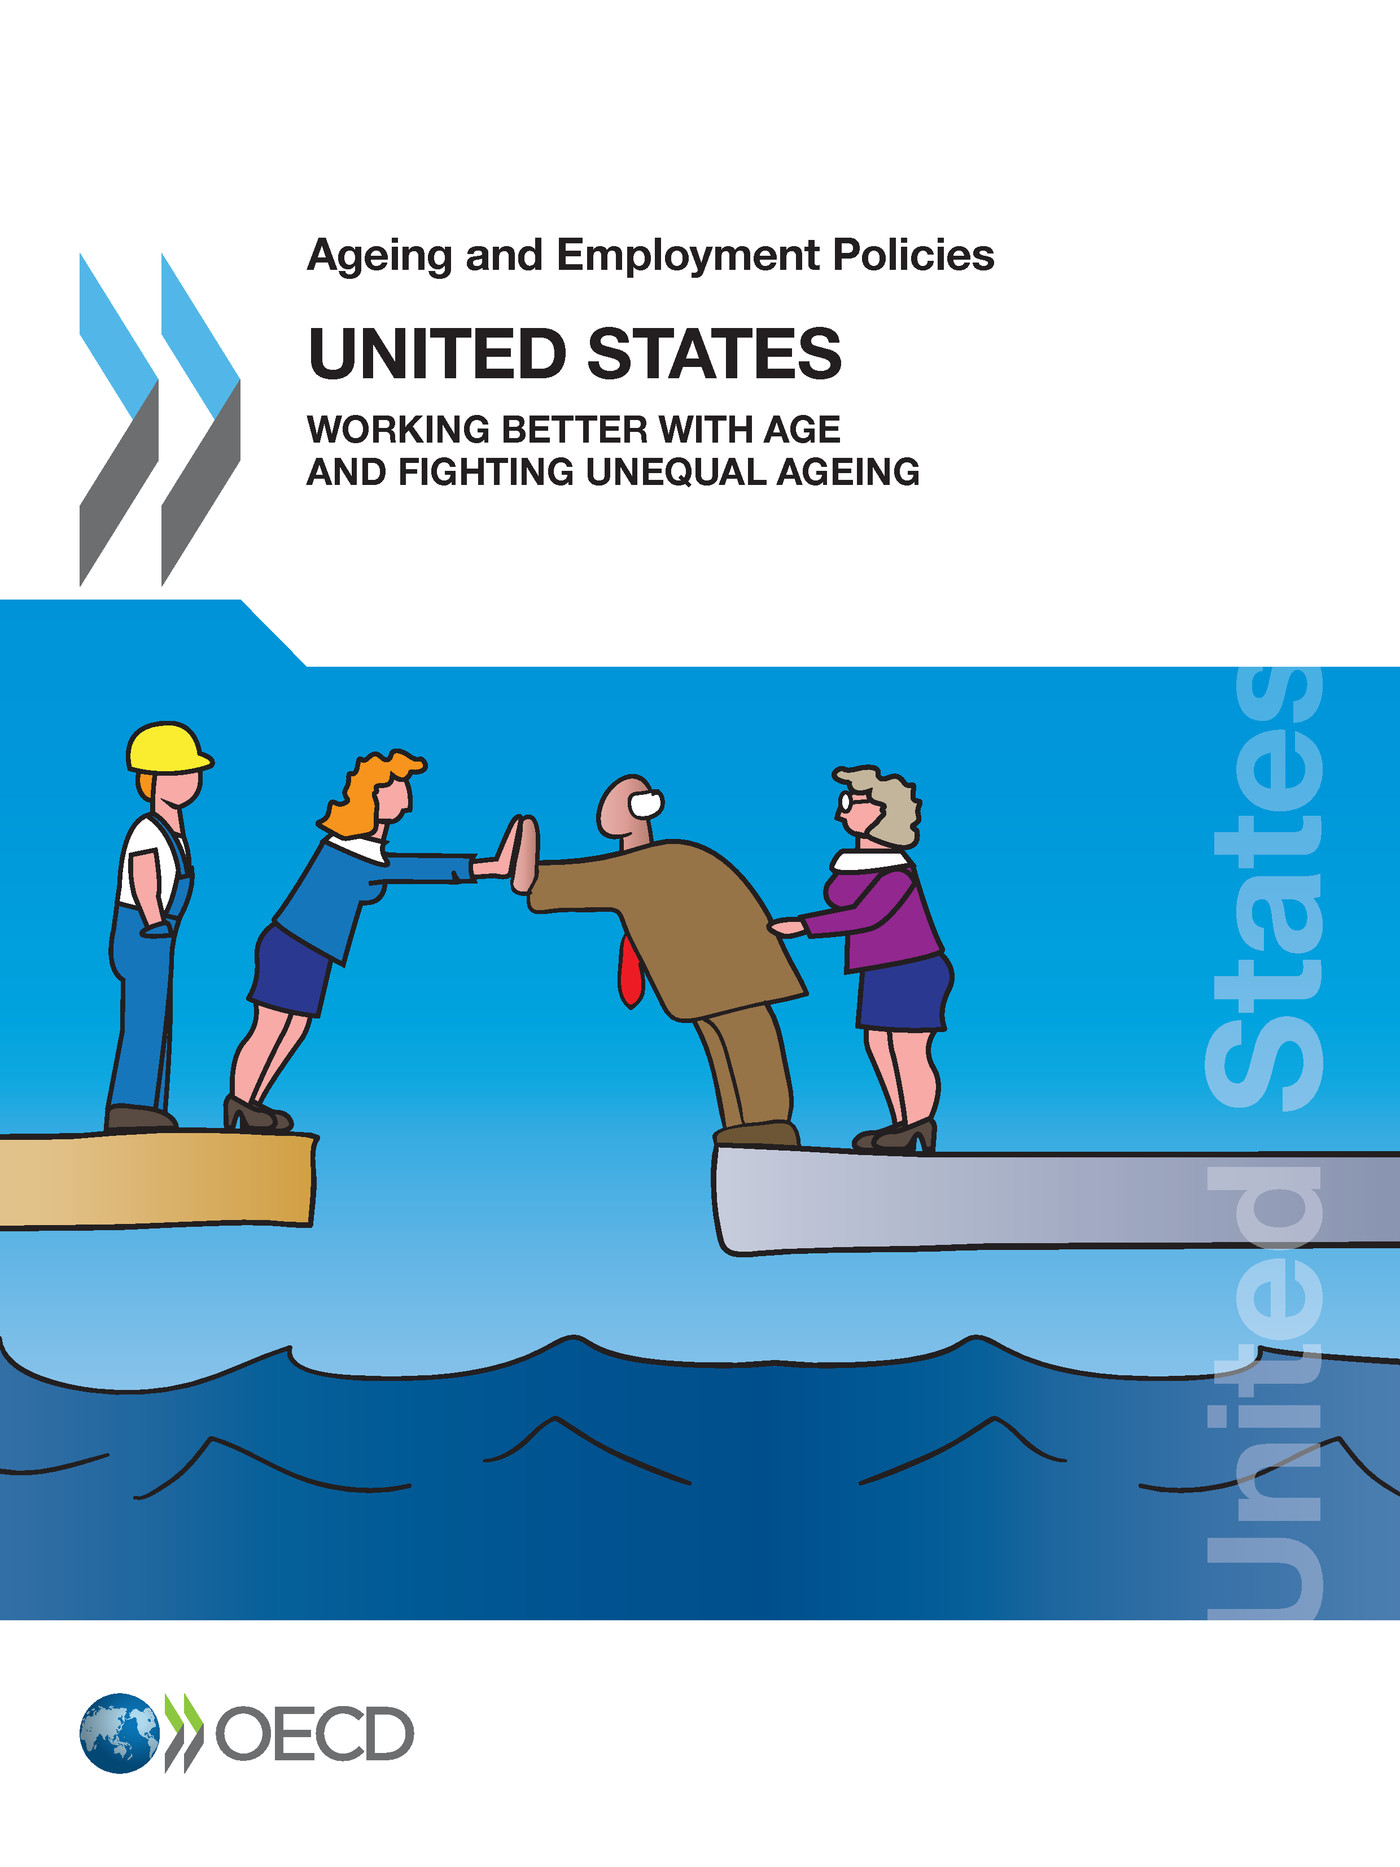 Ageing and Employment Policies: United States 2018 De  Collectif - OCDE / OECD